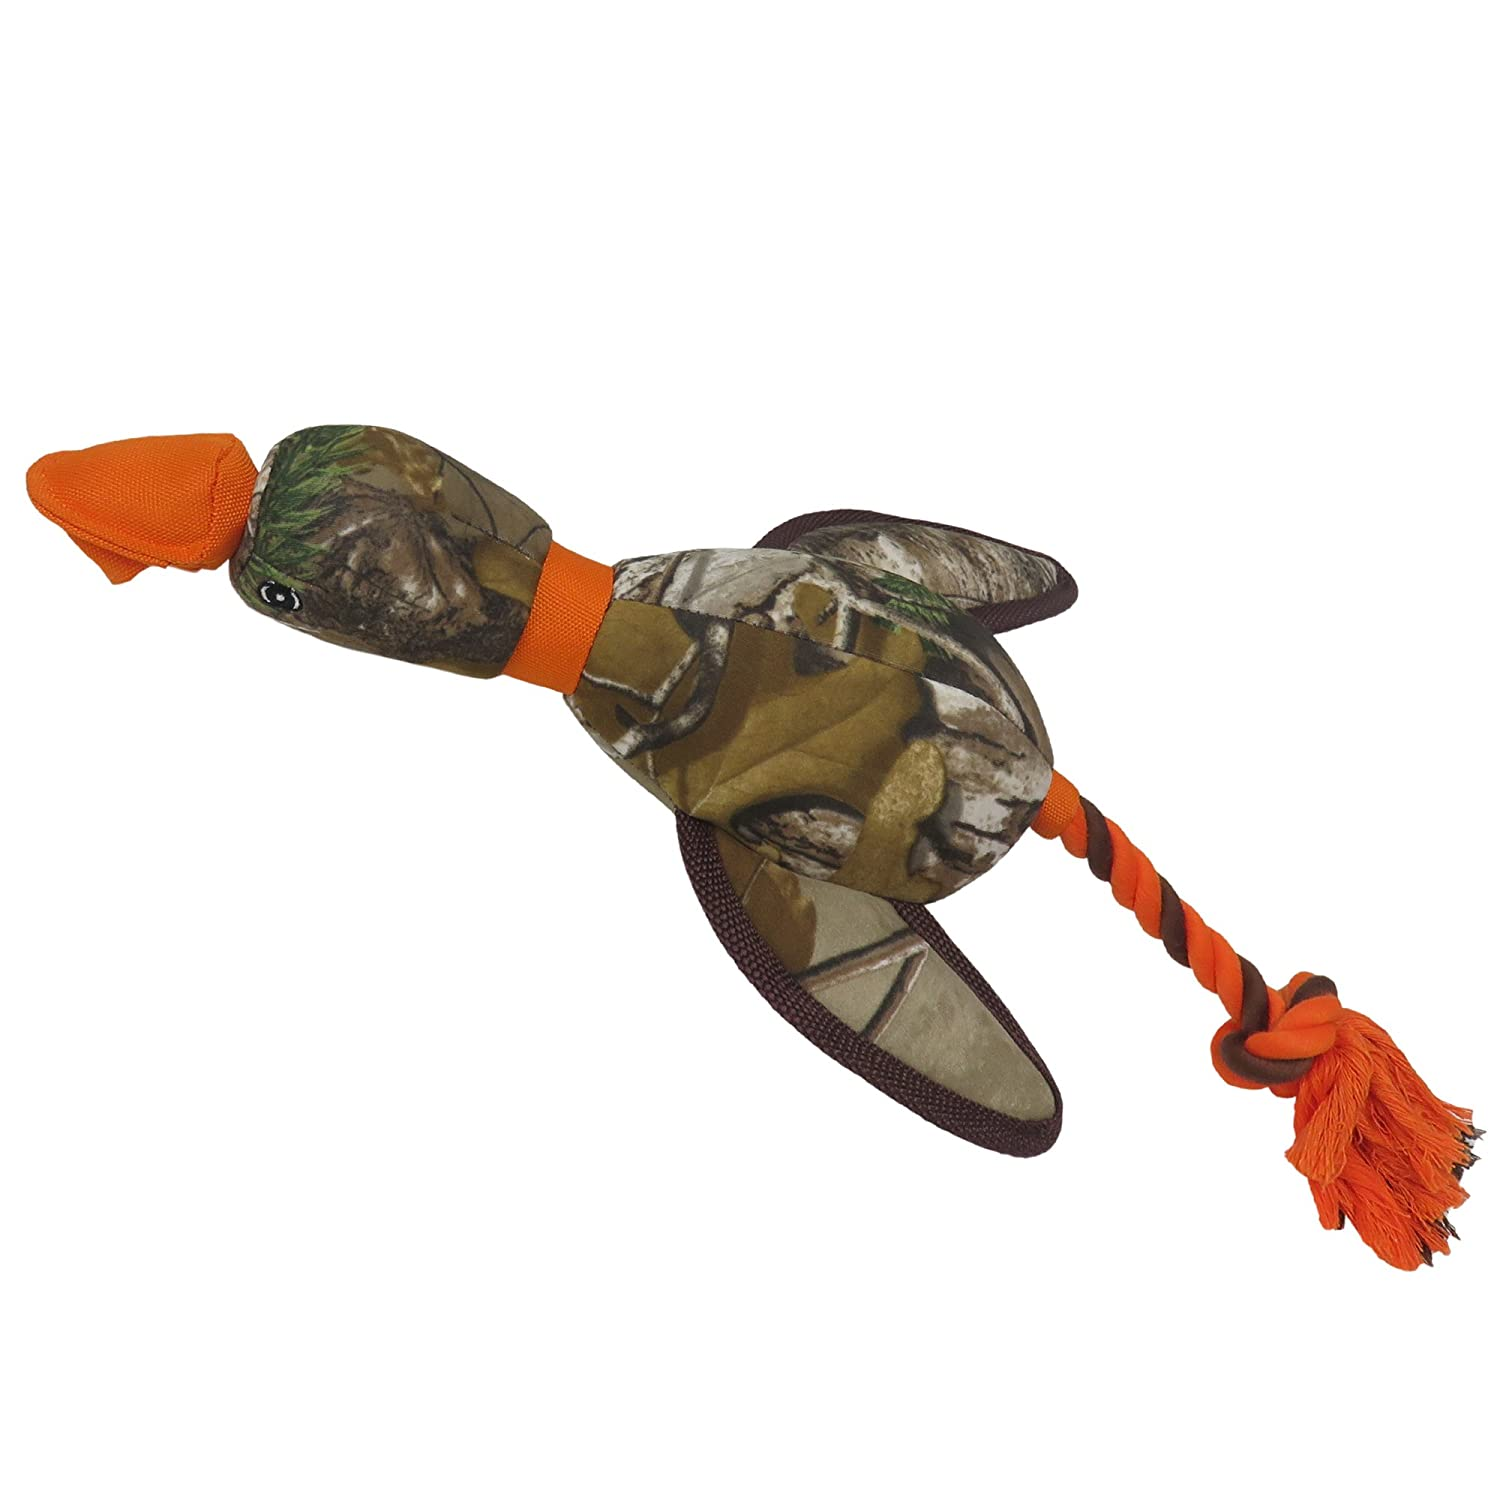 19 inches long Realtree Mallard Sling-Shot Dog Toy. Best Licensed Tough Floating Toy Dogs & Cats. Fun & Durable Pet Toy